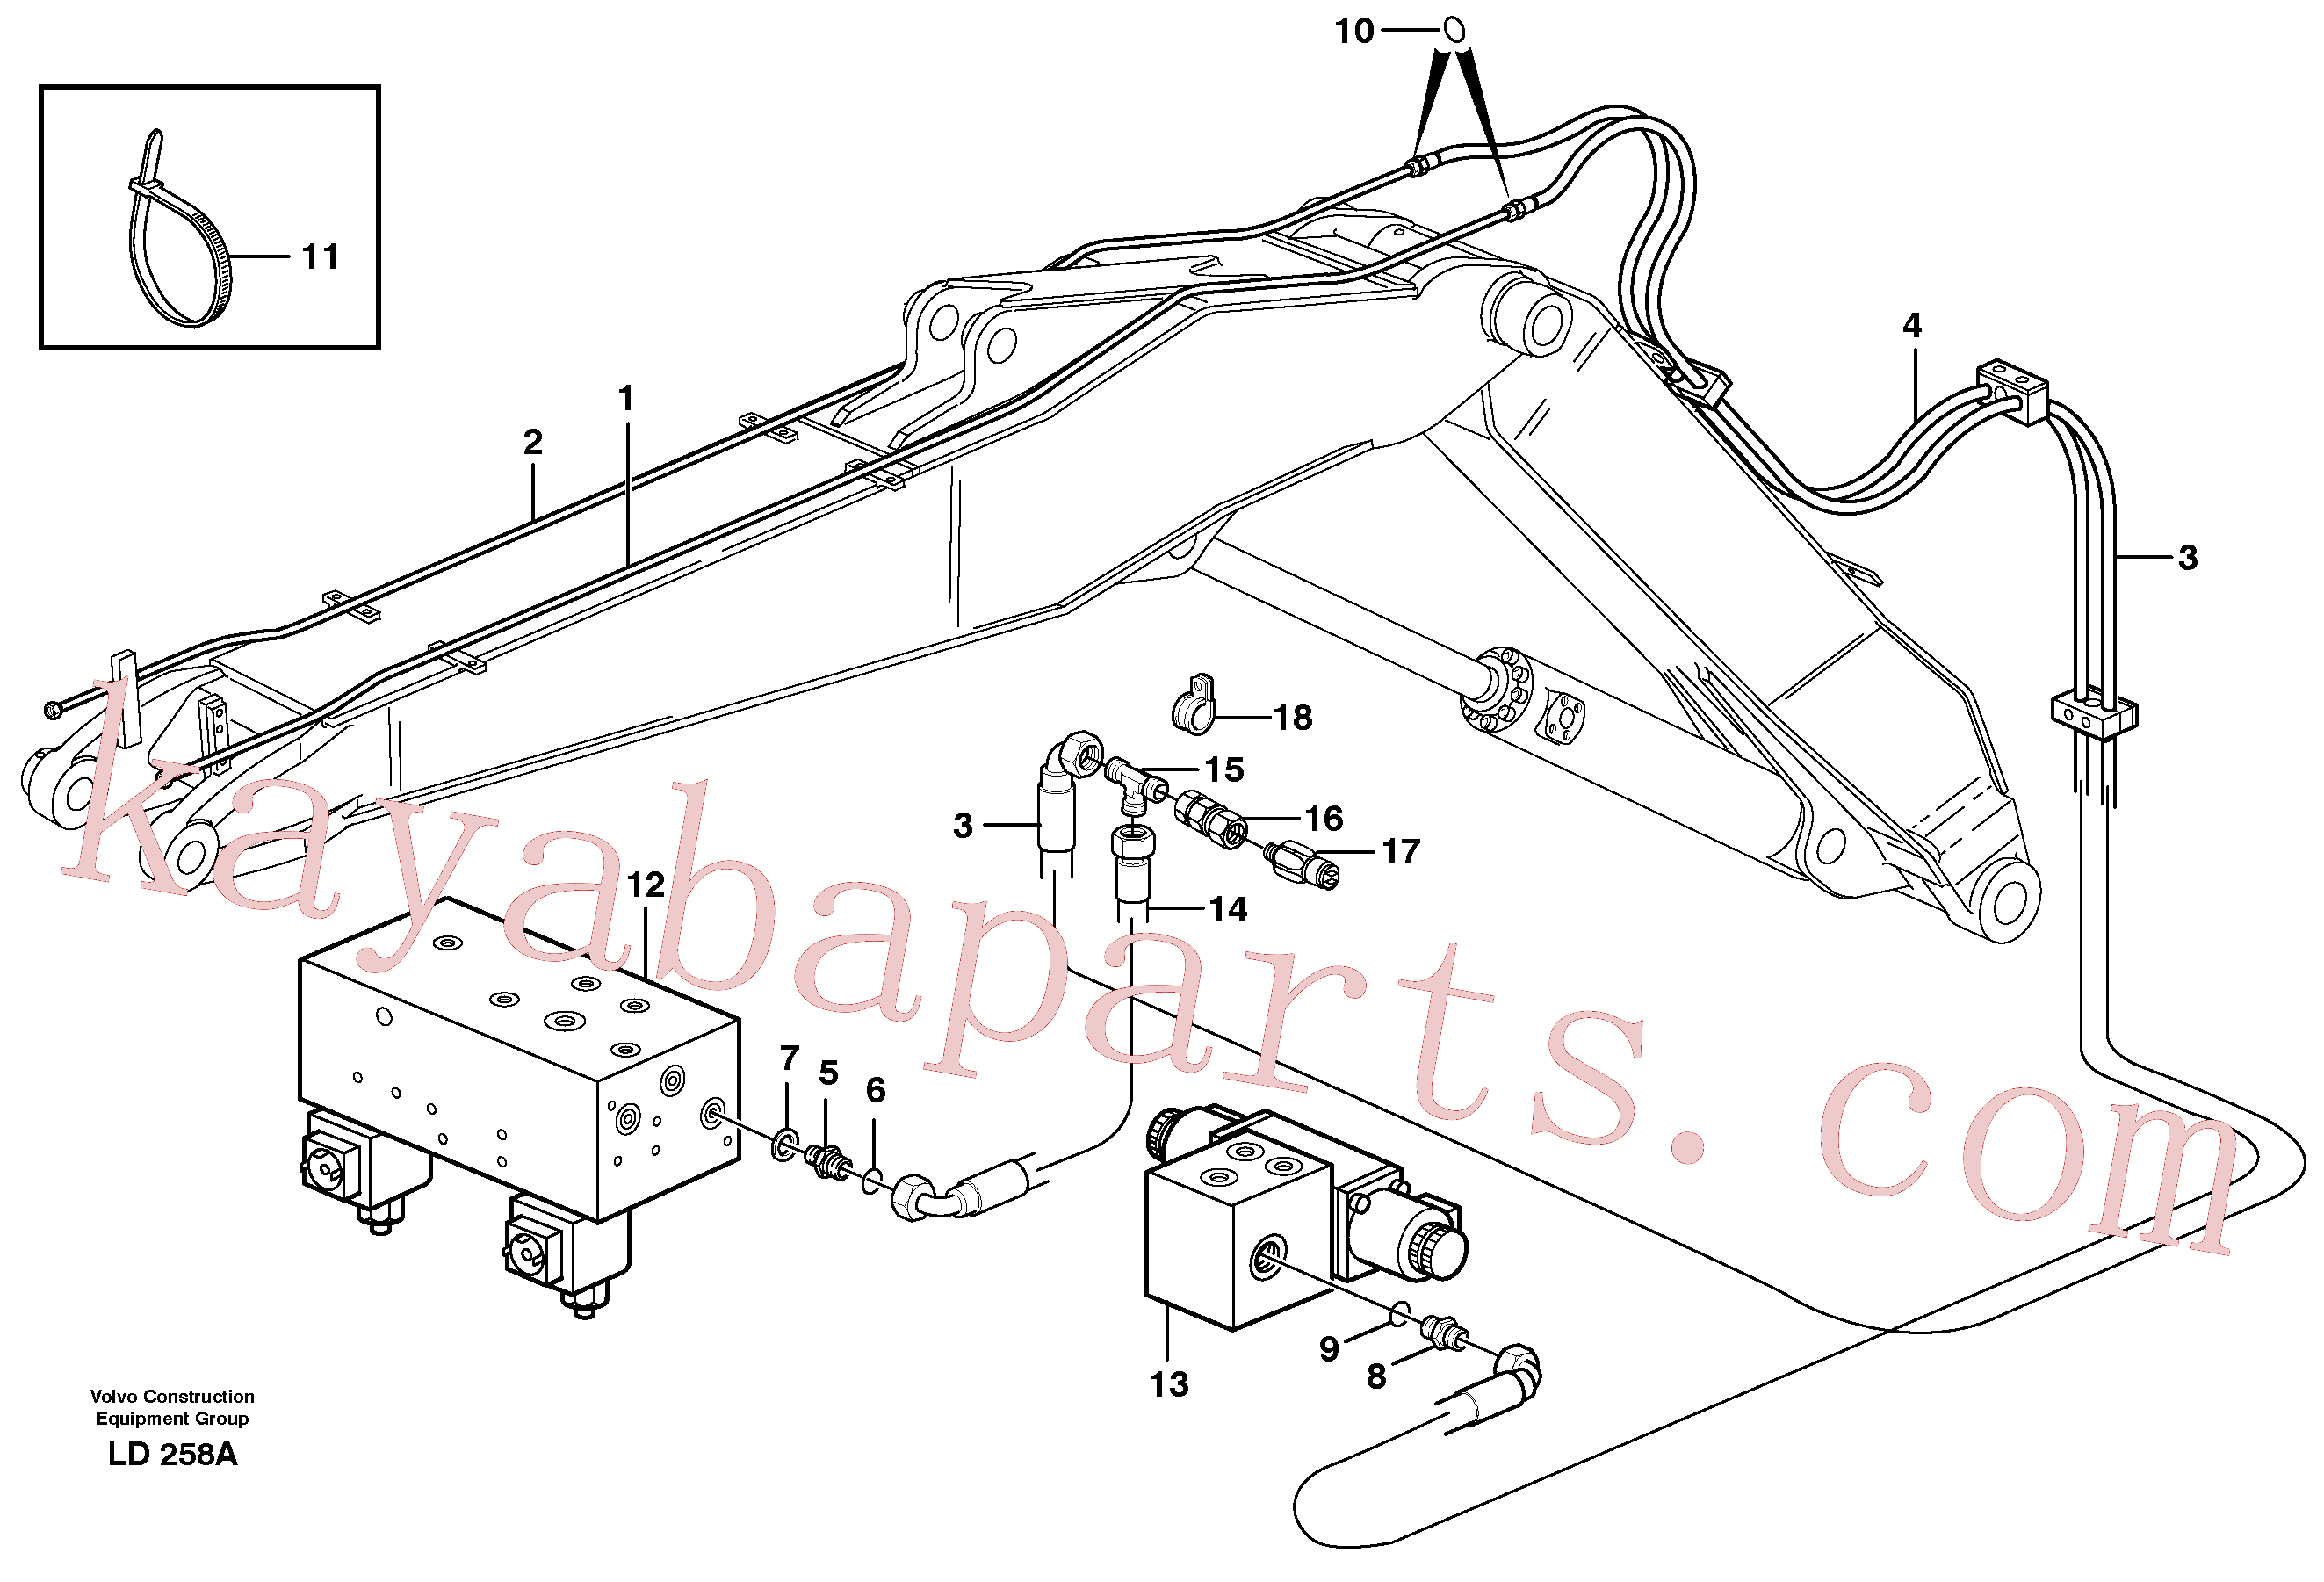 VOE14378711 for Volvo Hydr. quick fit equipm. on adjustable boom(LD258A assembly)